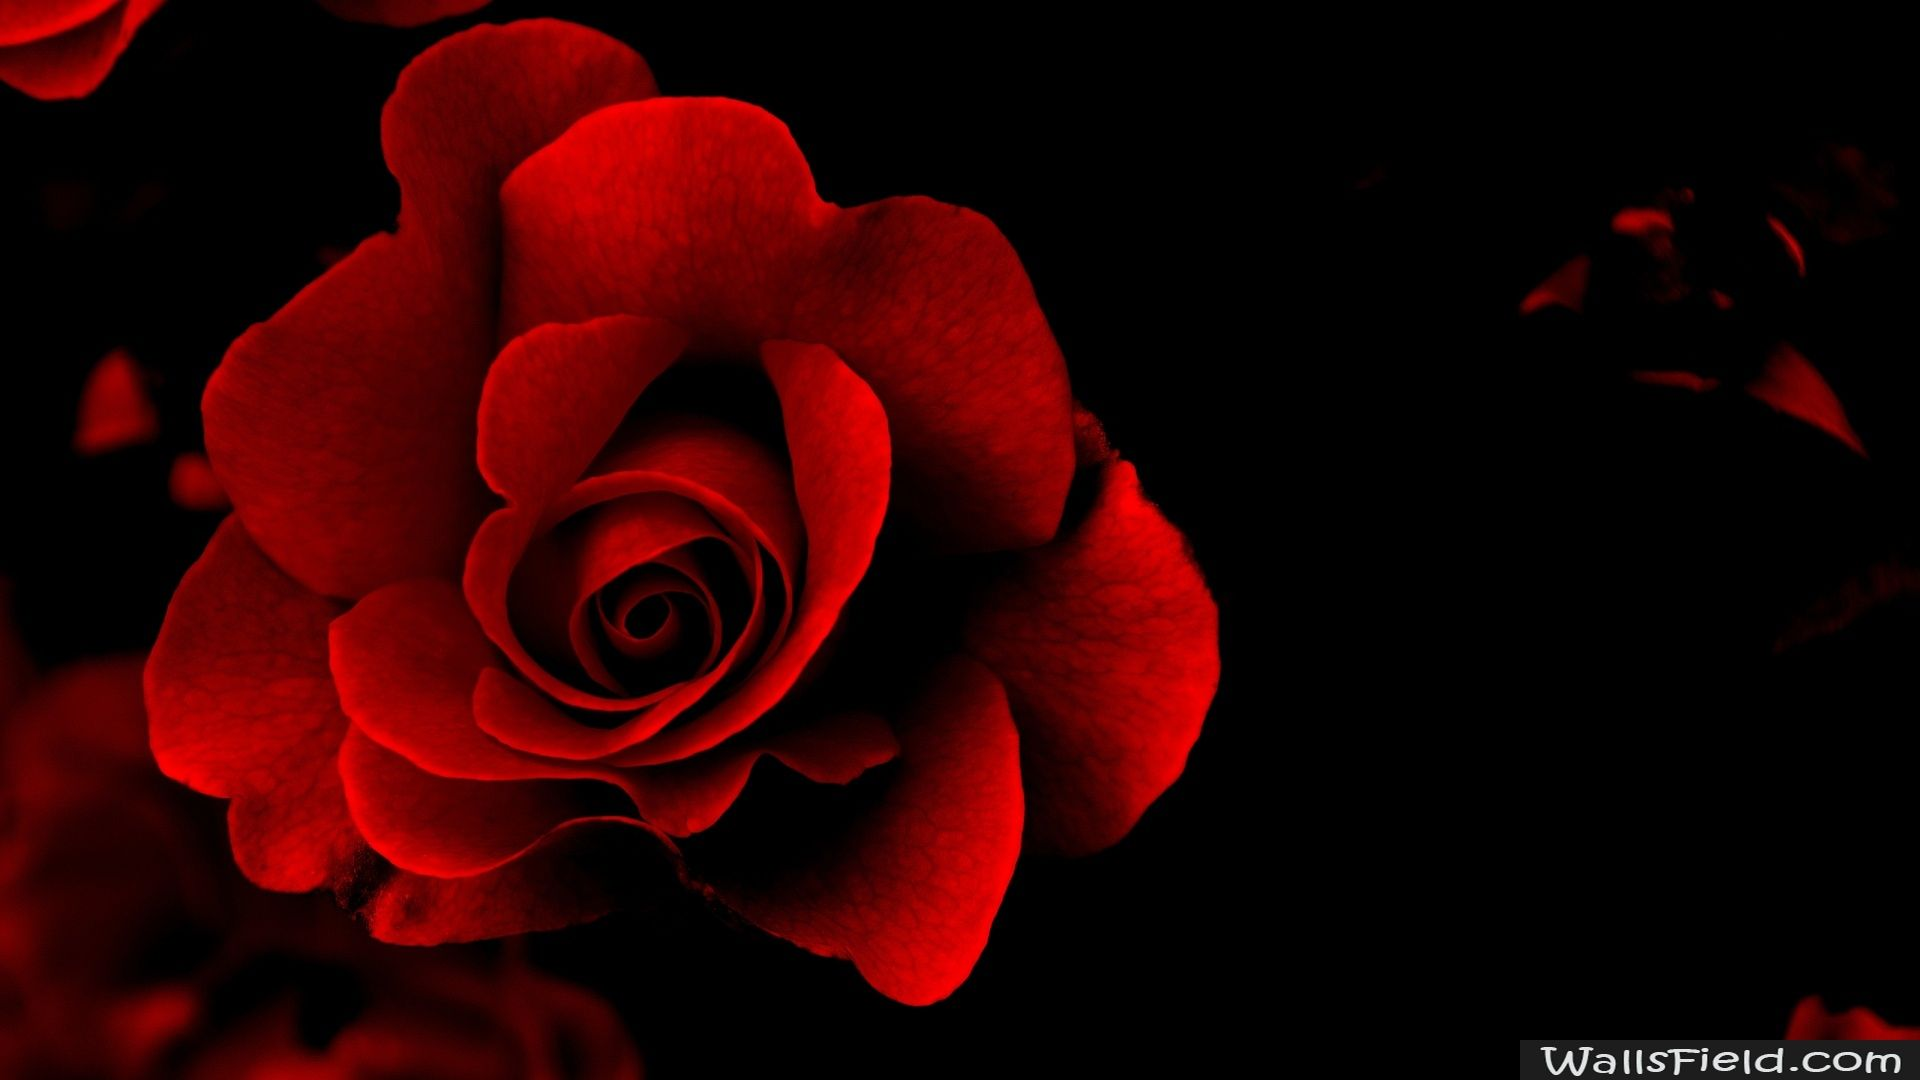 1920 X Red Rose Flower Desktop In Wallpaper Collections HD Wallpapers